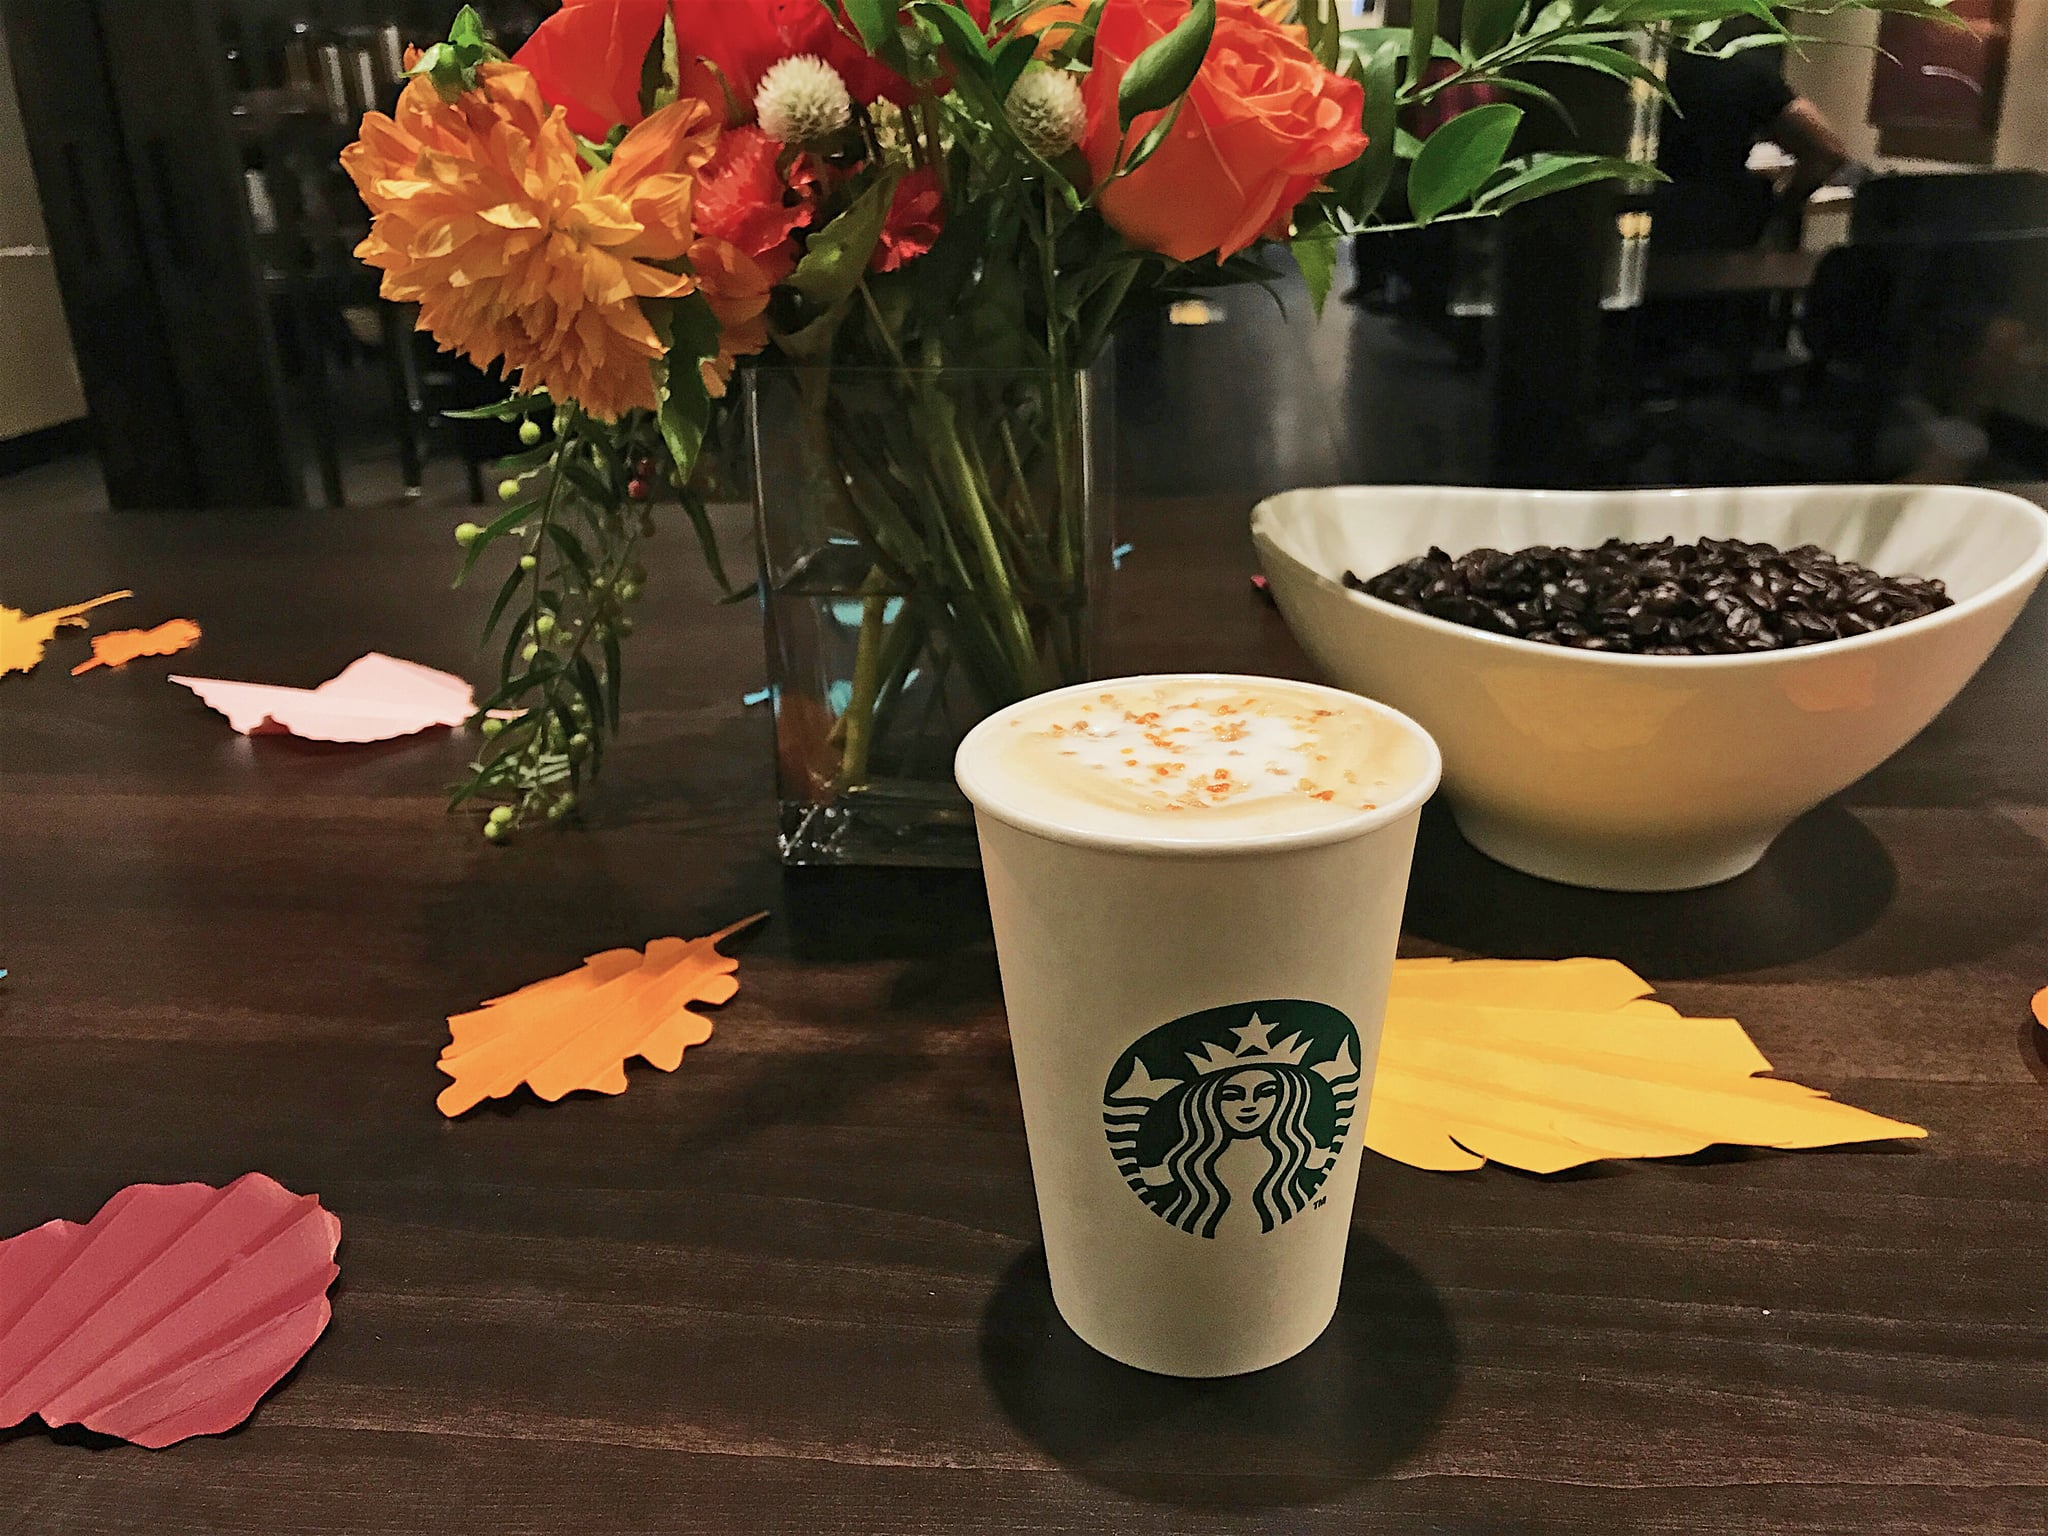 Starbucks Reveals Brand-New Maple Pecan Latte